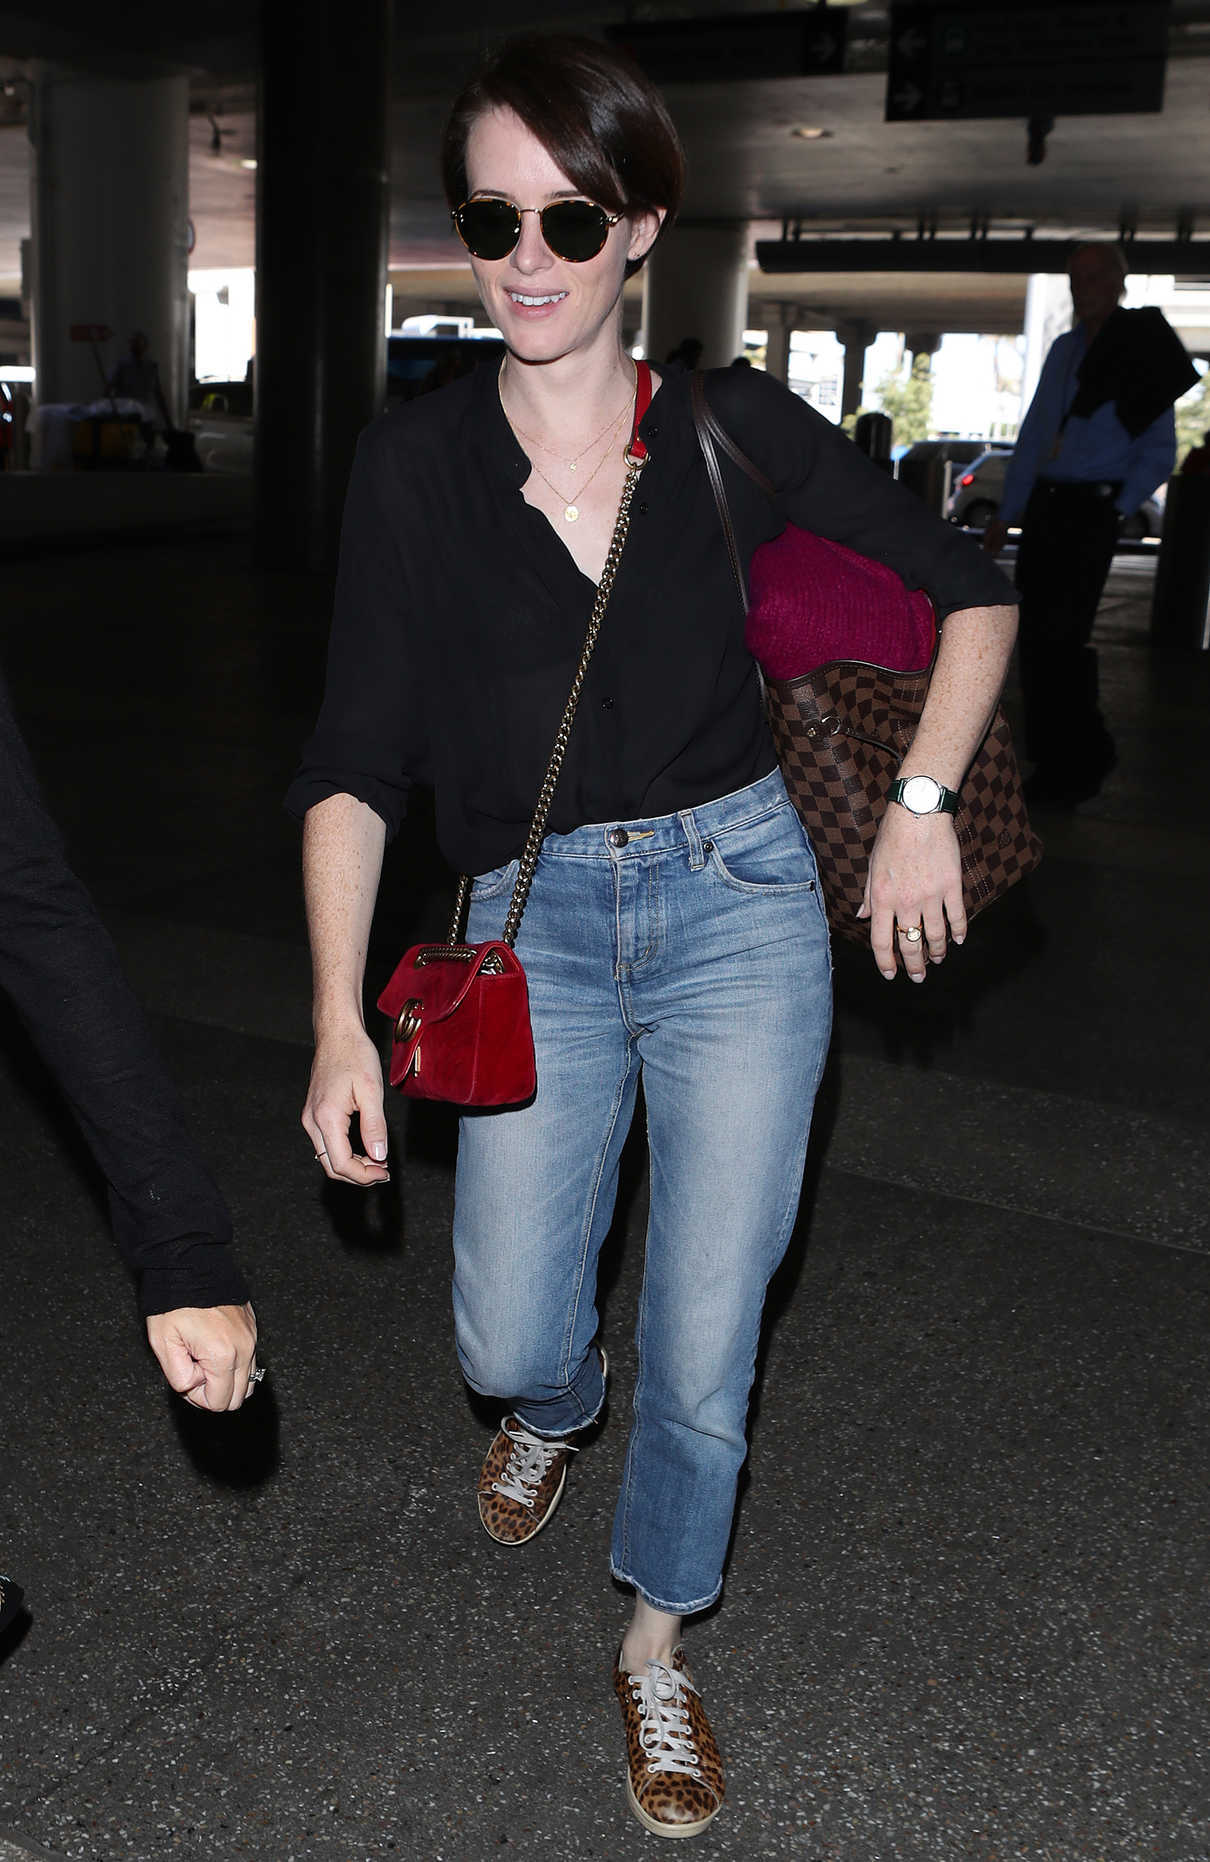 Claire Foy in an Animal Print Sneakers Arrives at LAX Airport in LA 09/19/2018